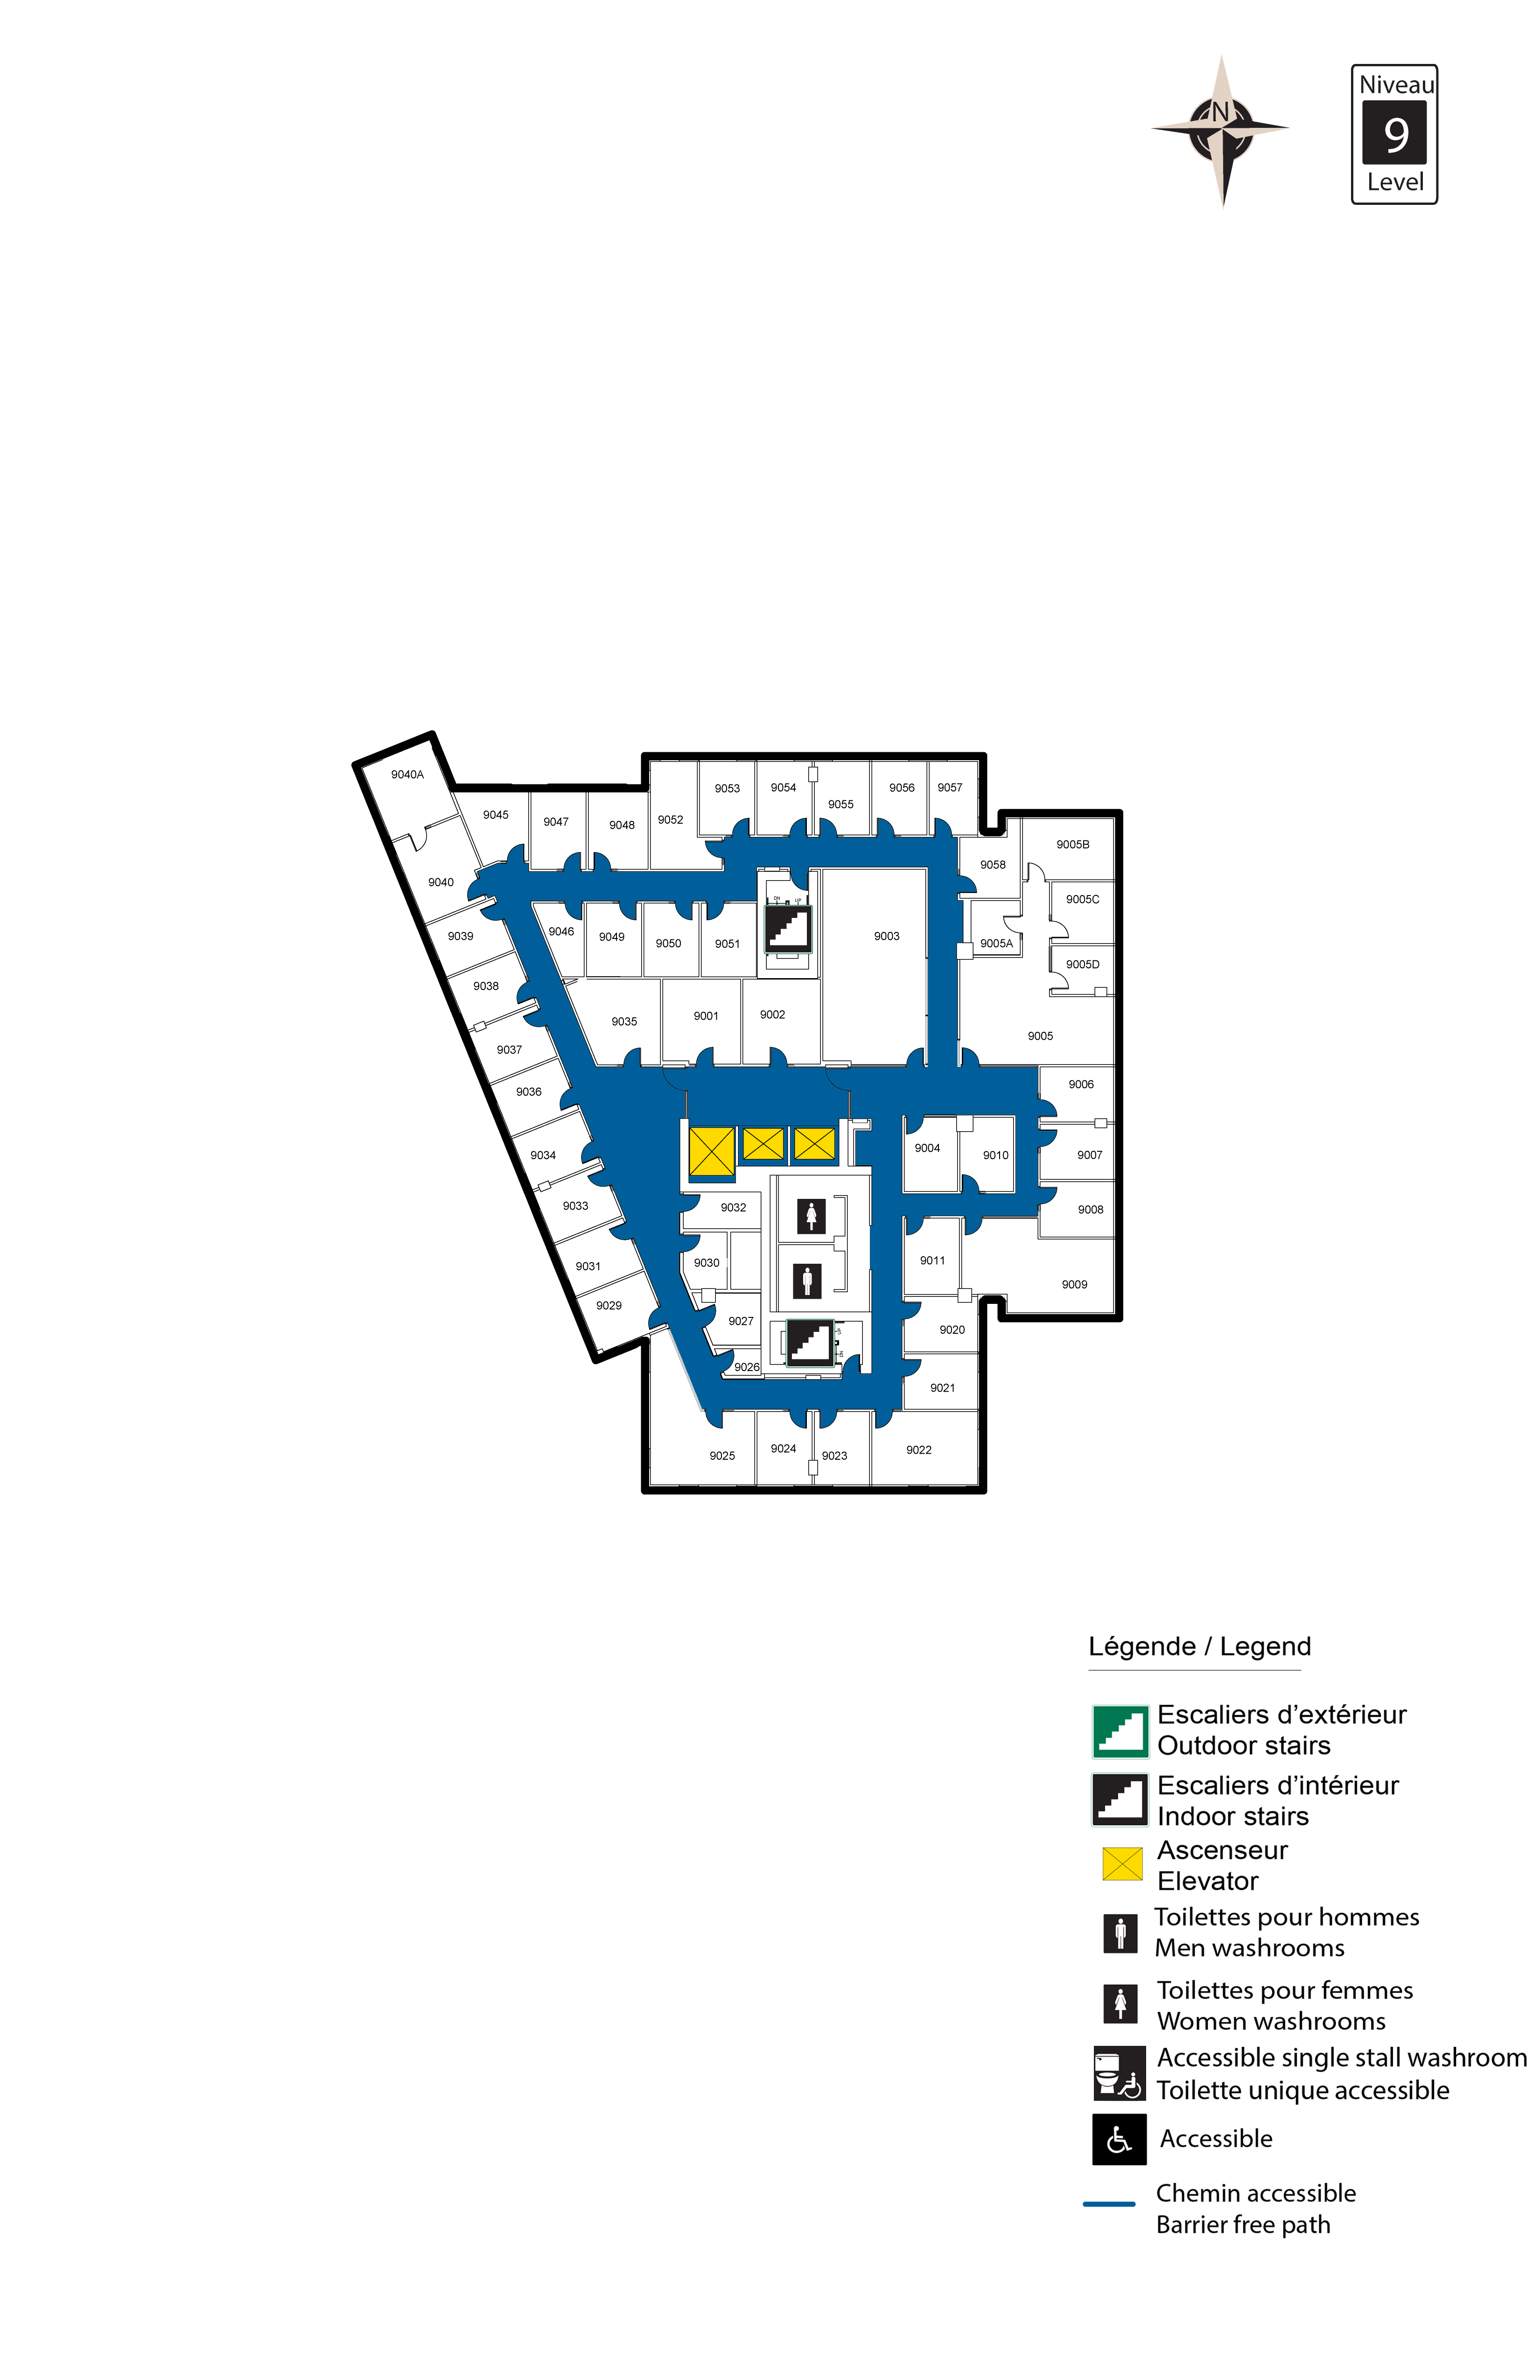 Accessible Map - FSS Level 9